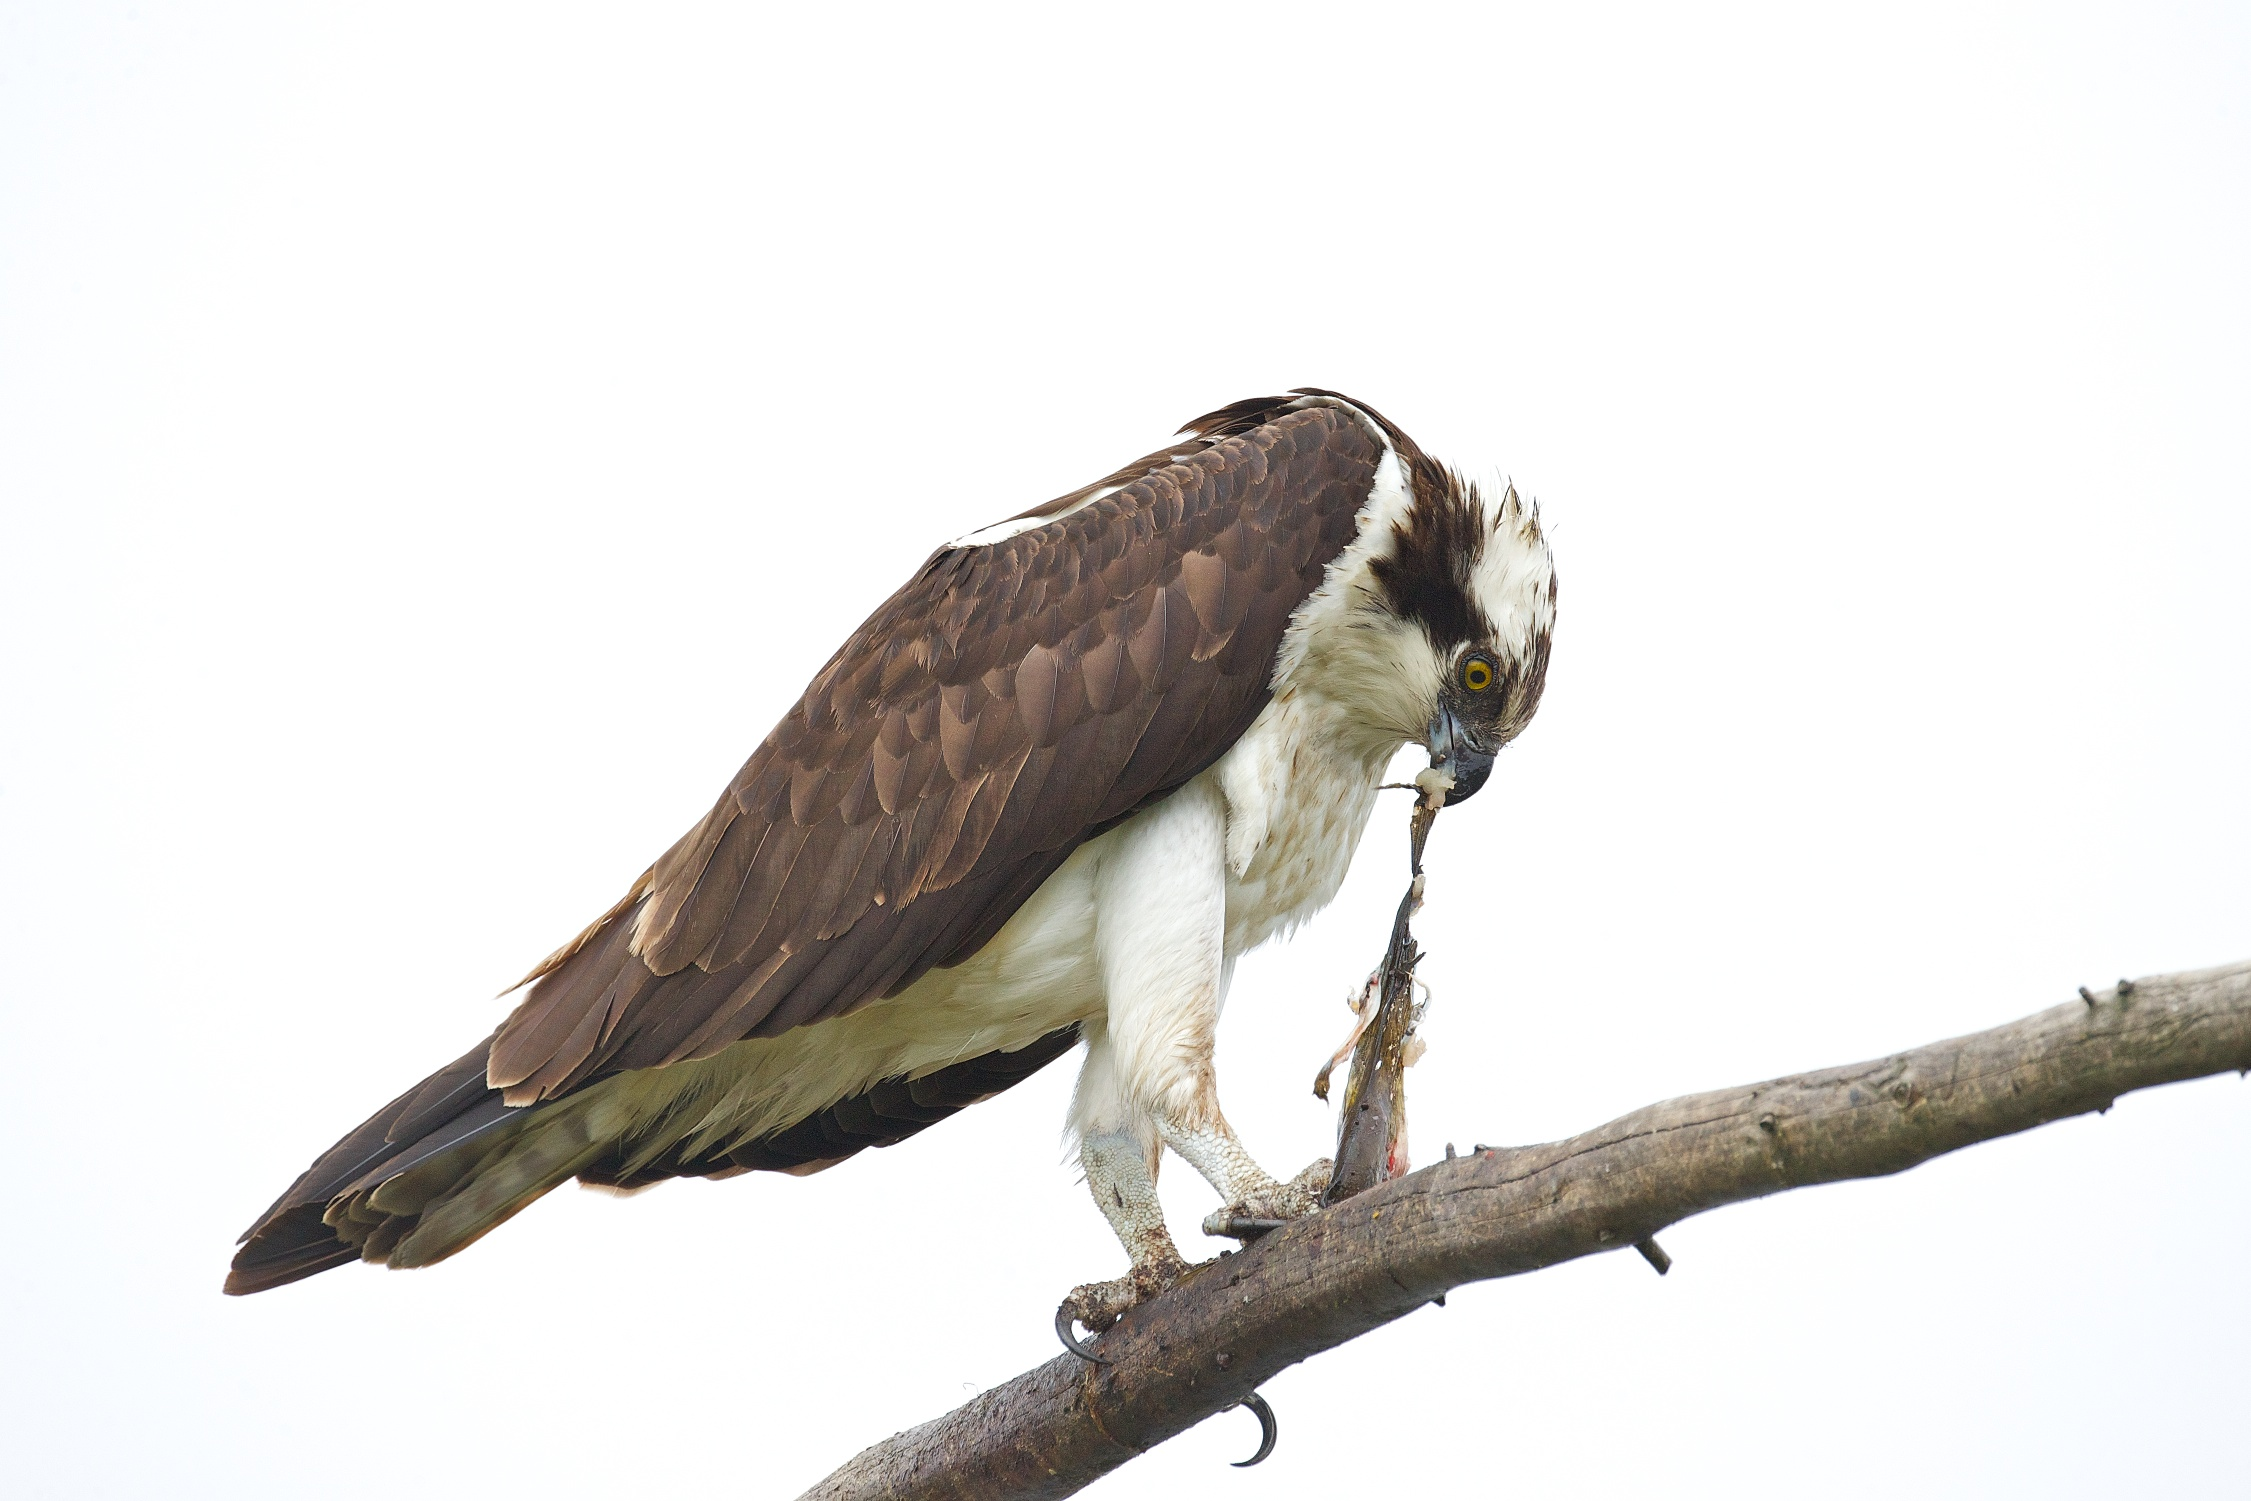 osprey eating fish 11